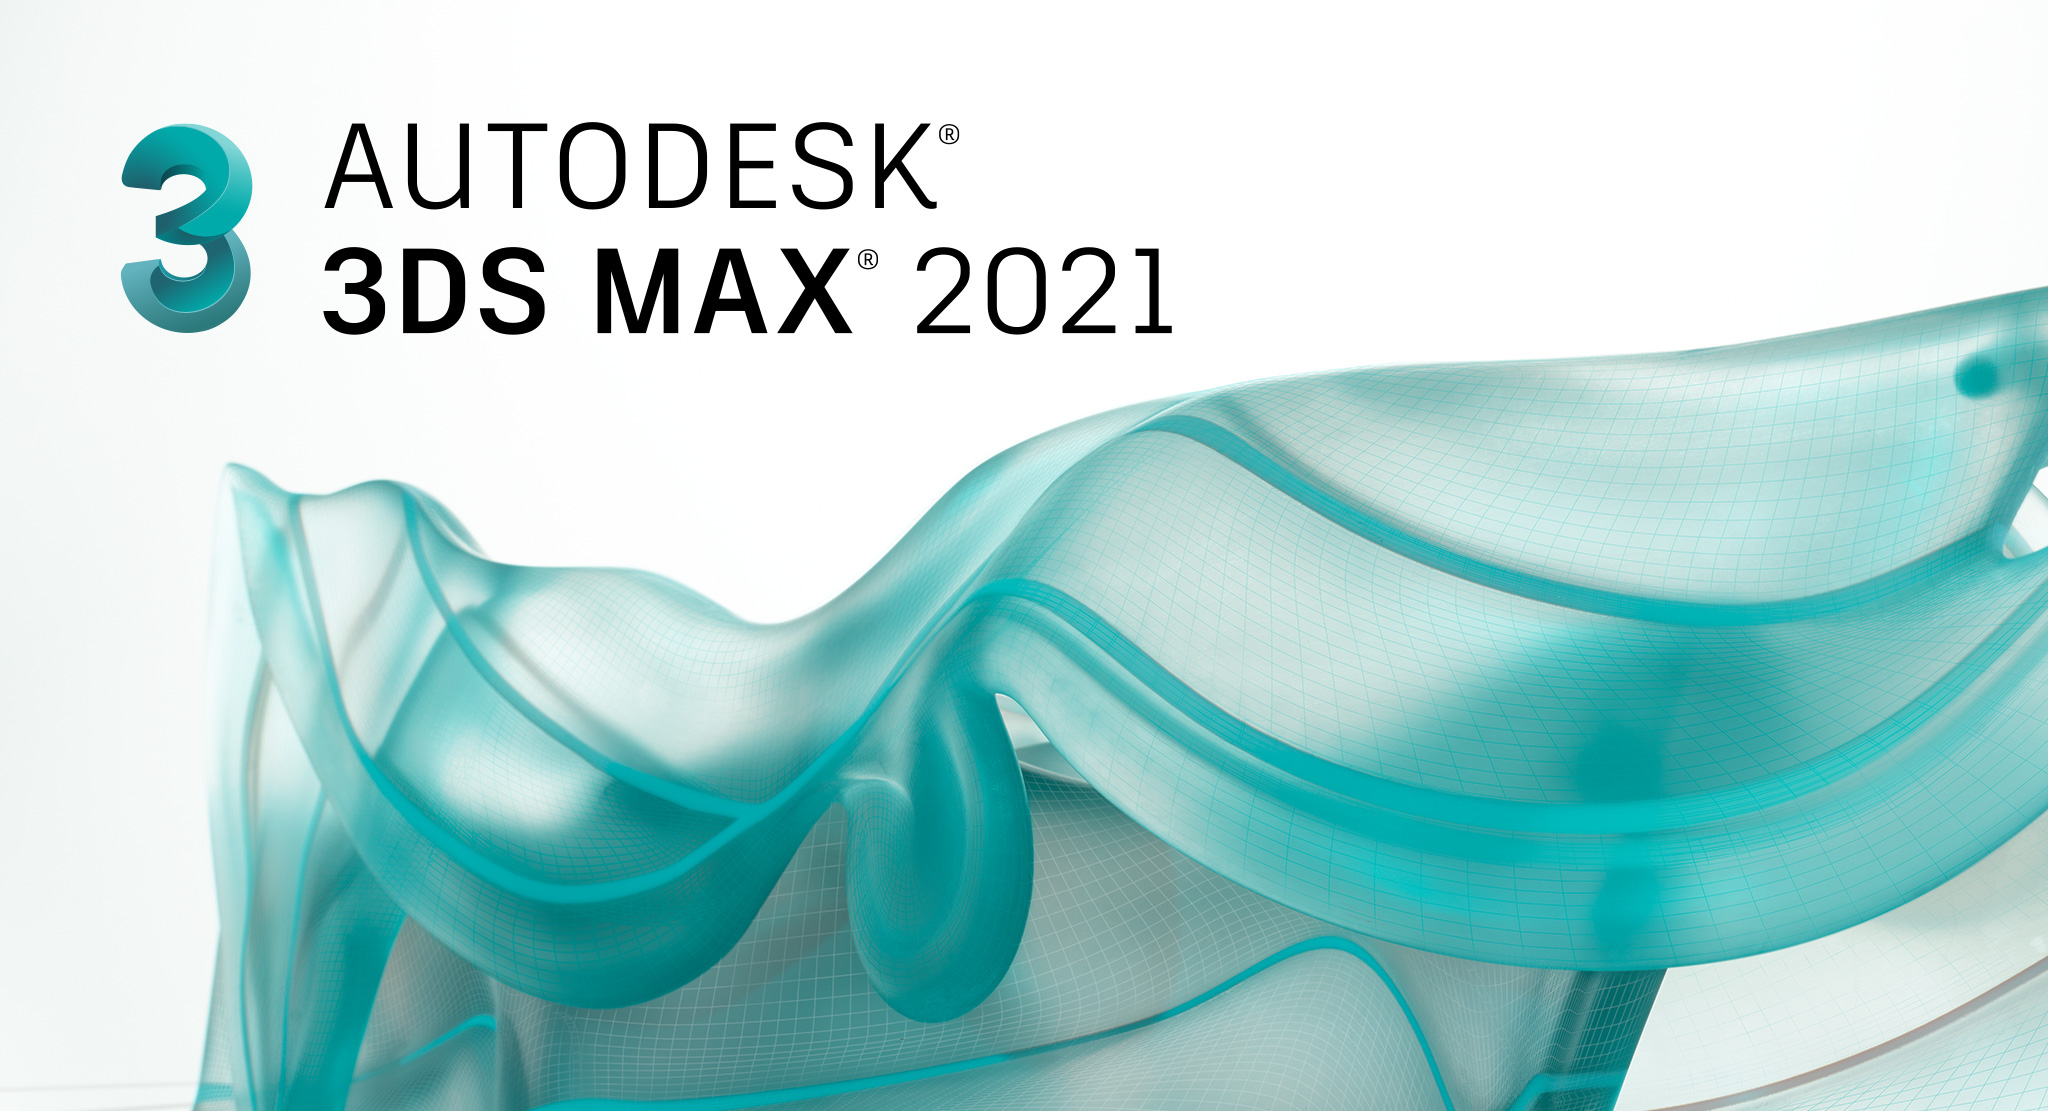 Autodesk 3ds Max 2021 Available Now!